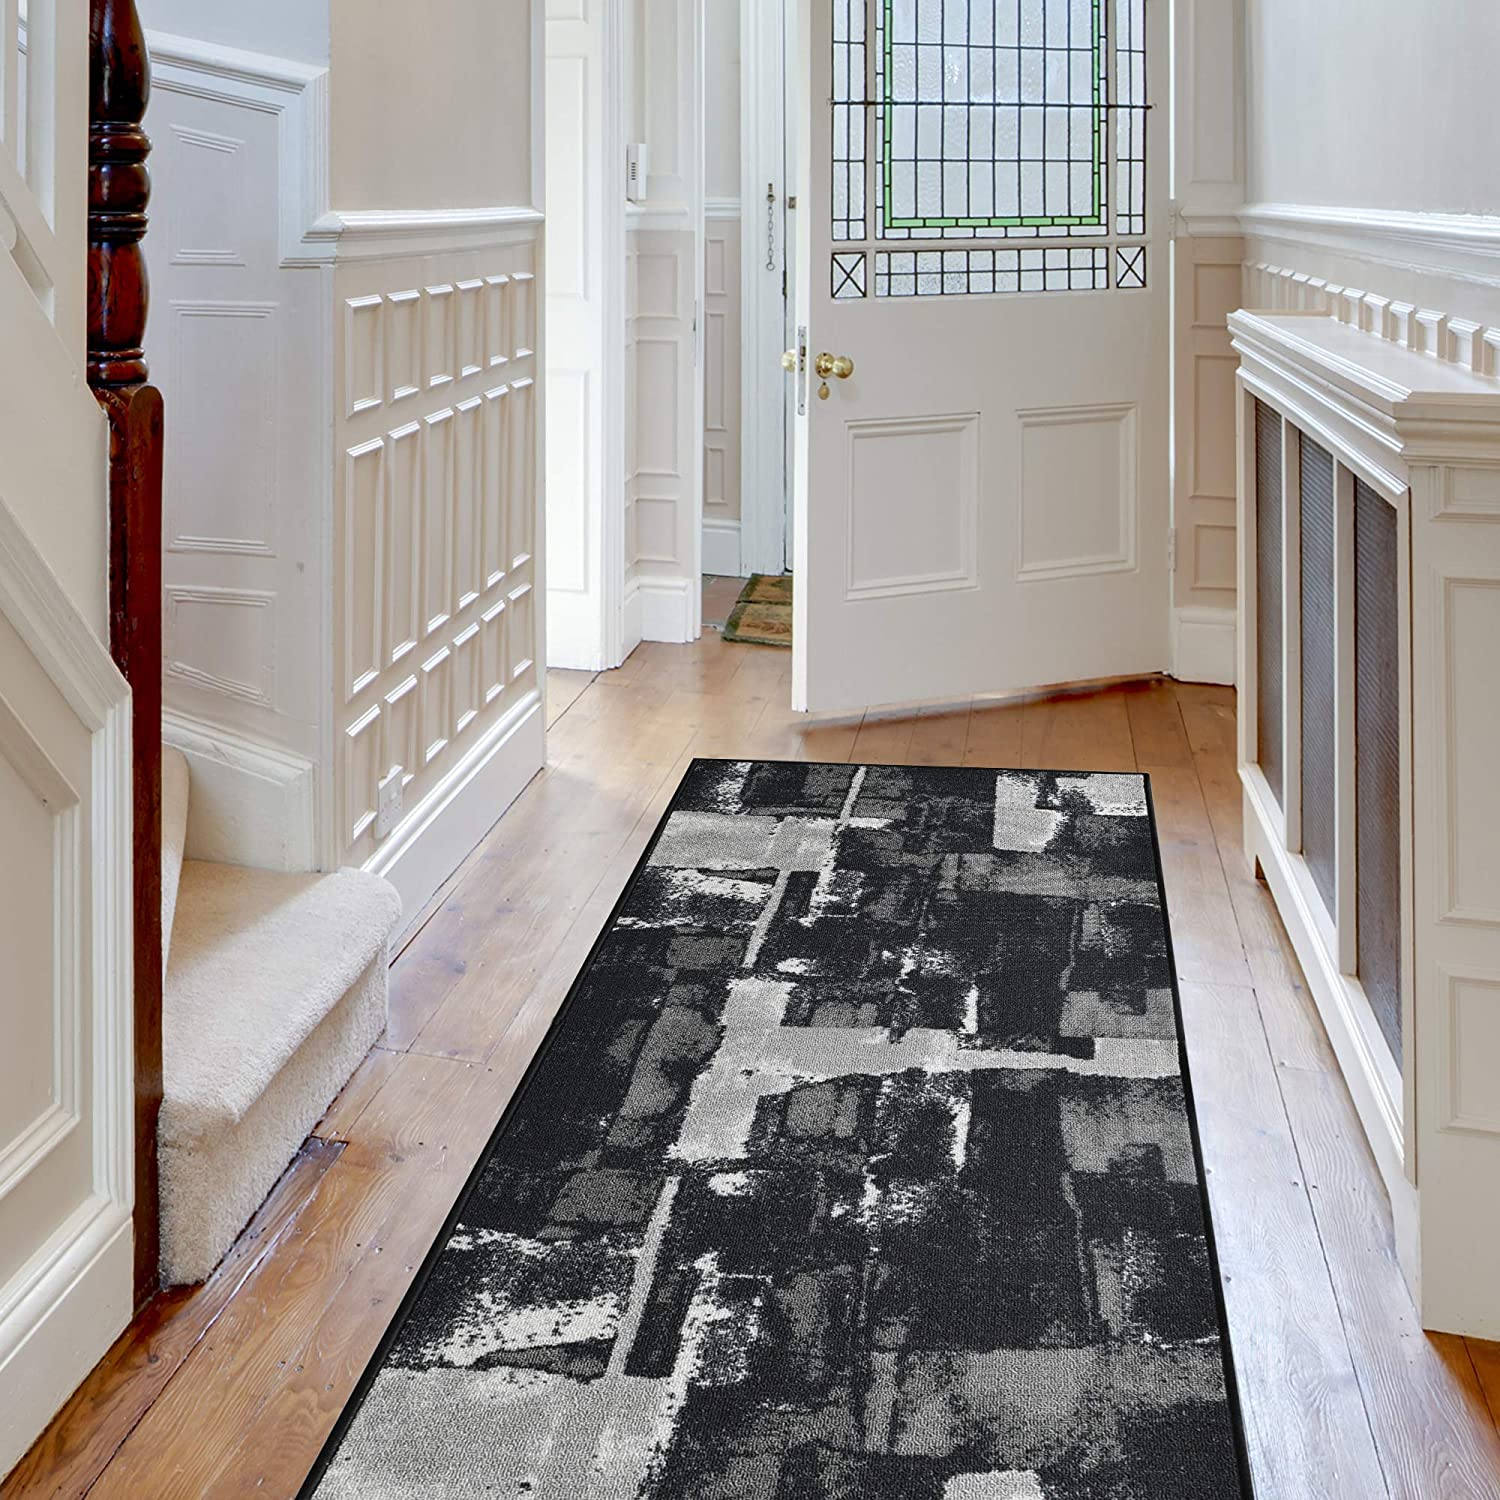 Decorative Area Rug and Carpet Runner for Stairs Hallway 26 X 8 Black Non-Skid Rubber Back 8 Patterns Customizable Lengths iCustomRug Abstract